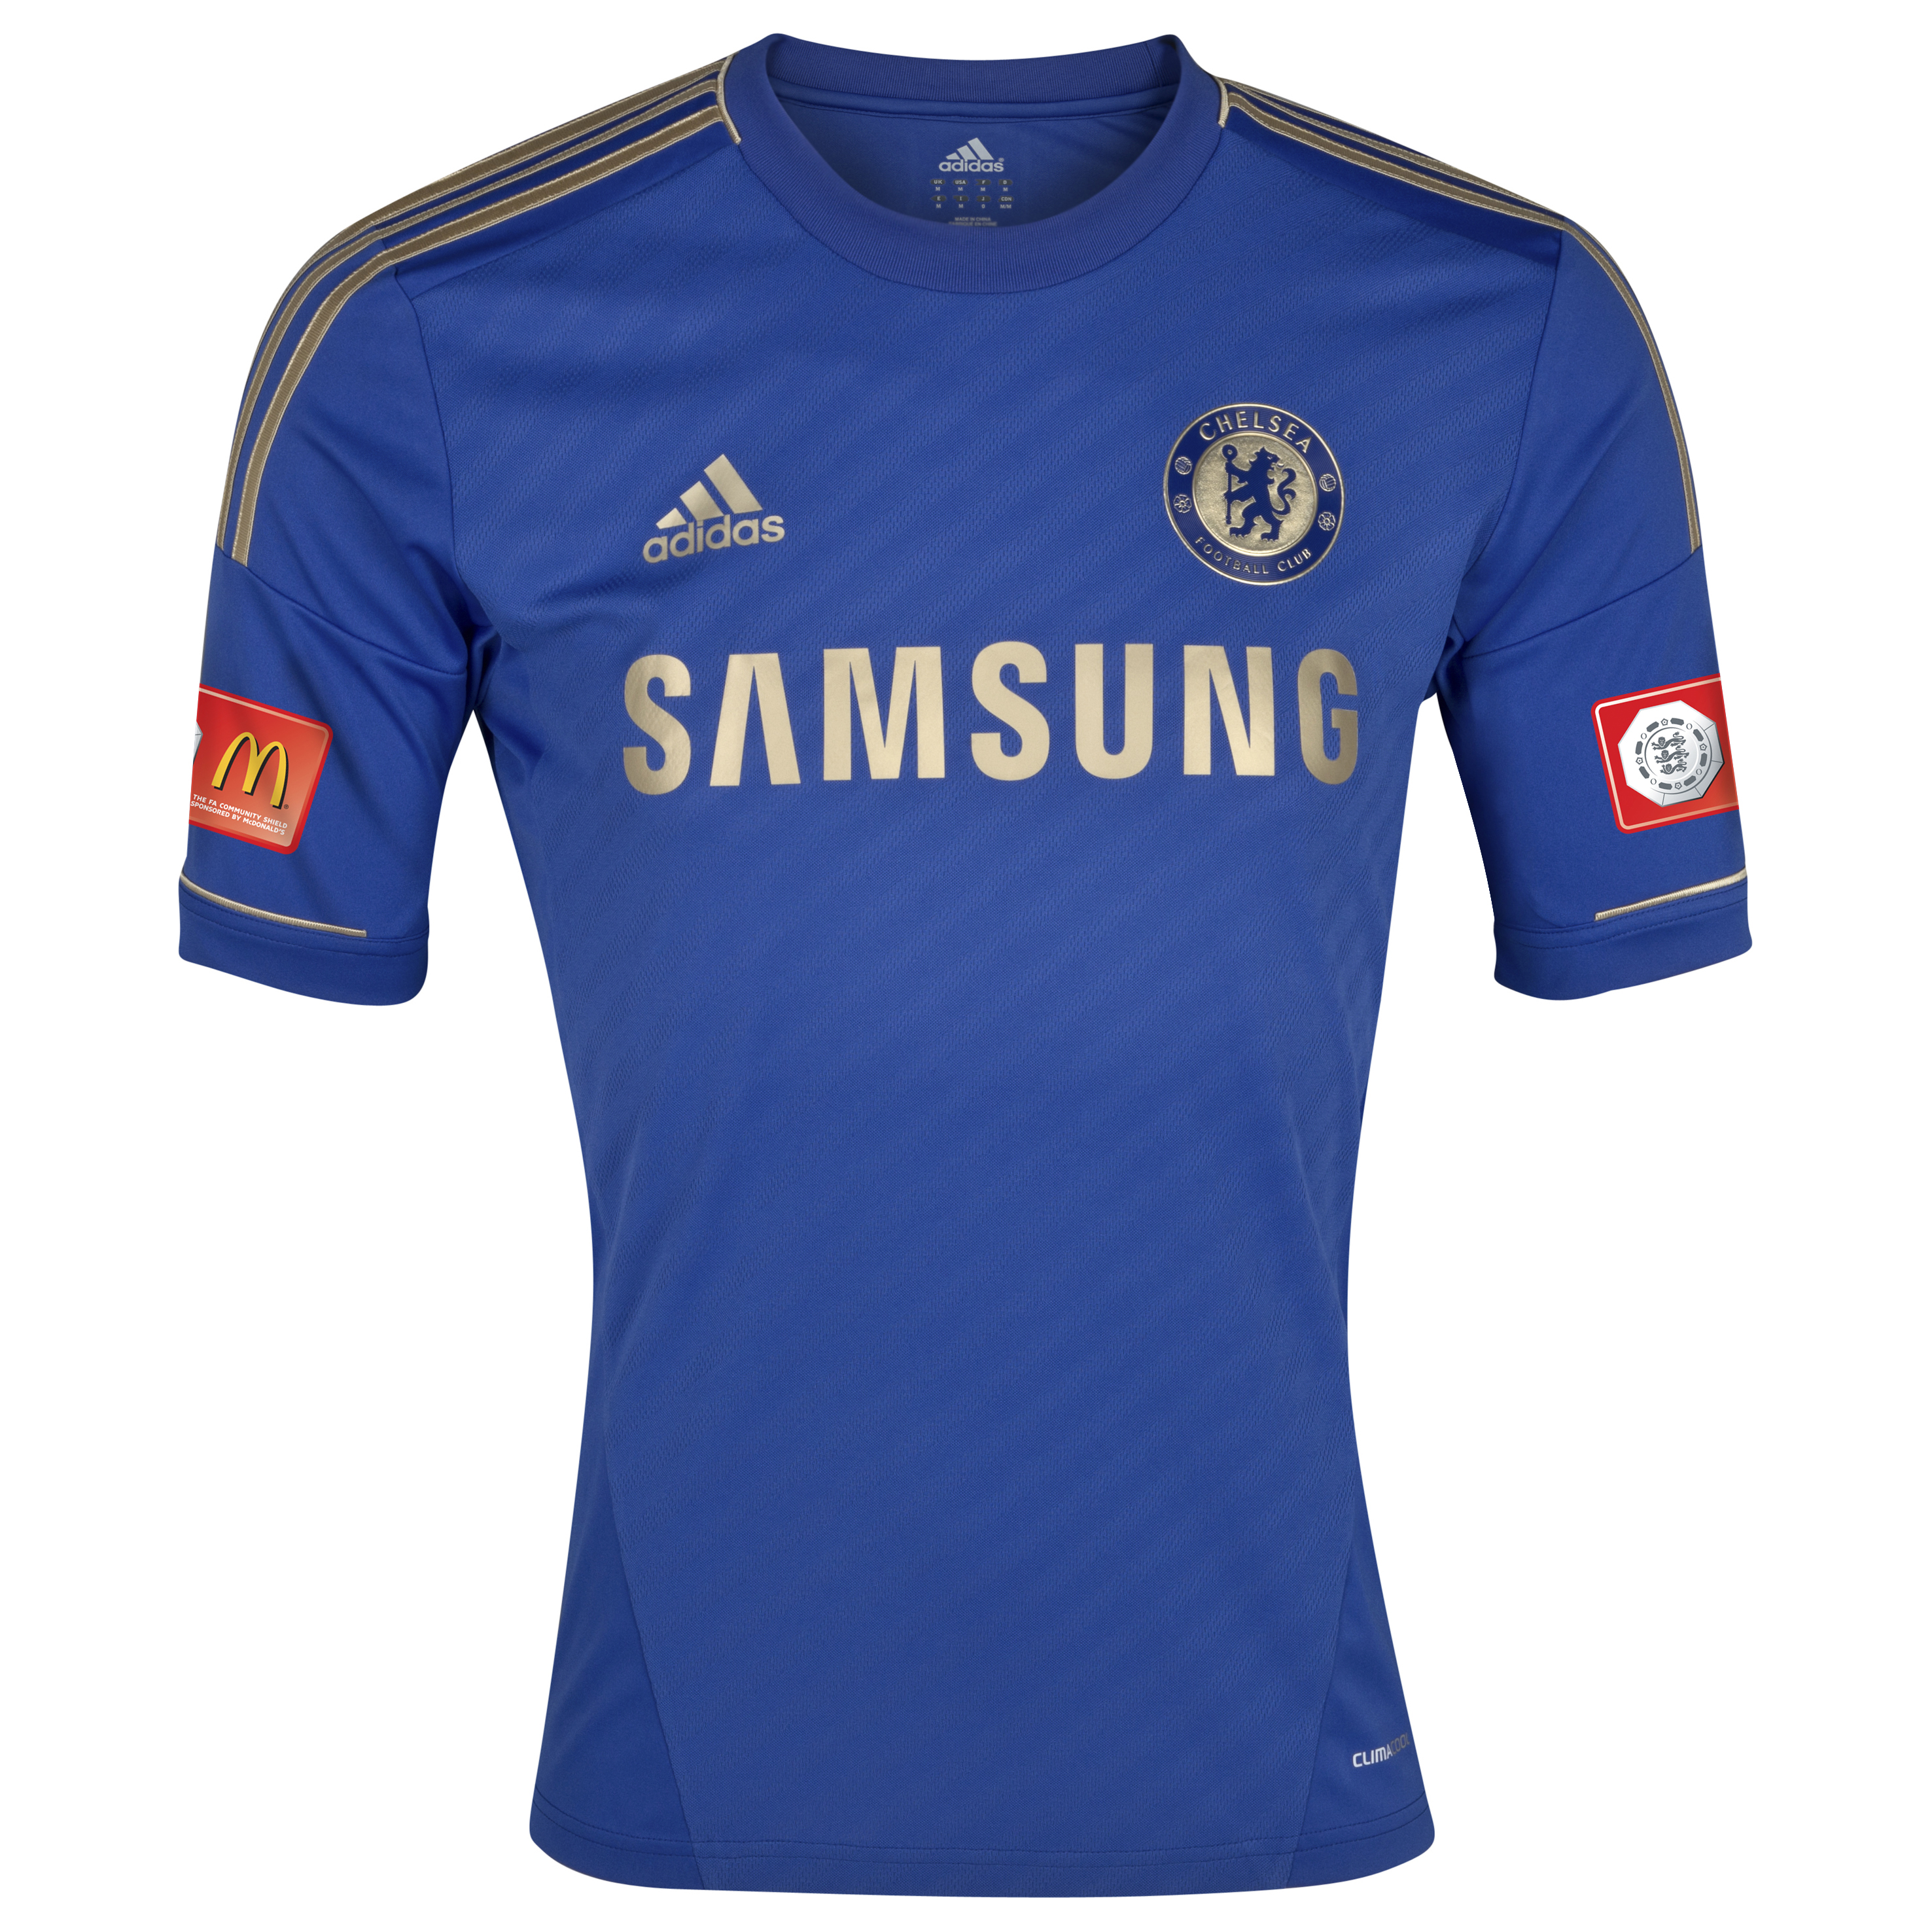 Chelsea Home Shirt 2012/13 Including FA Community Shield Badge